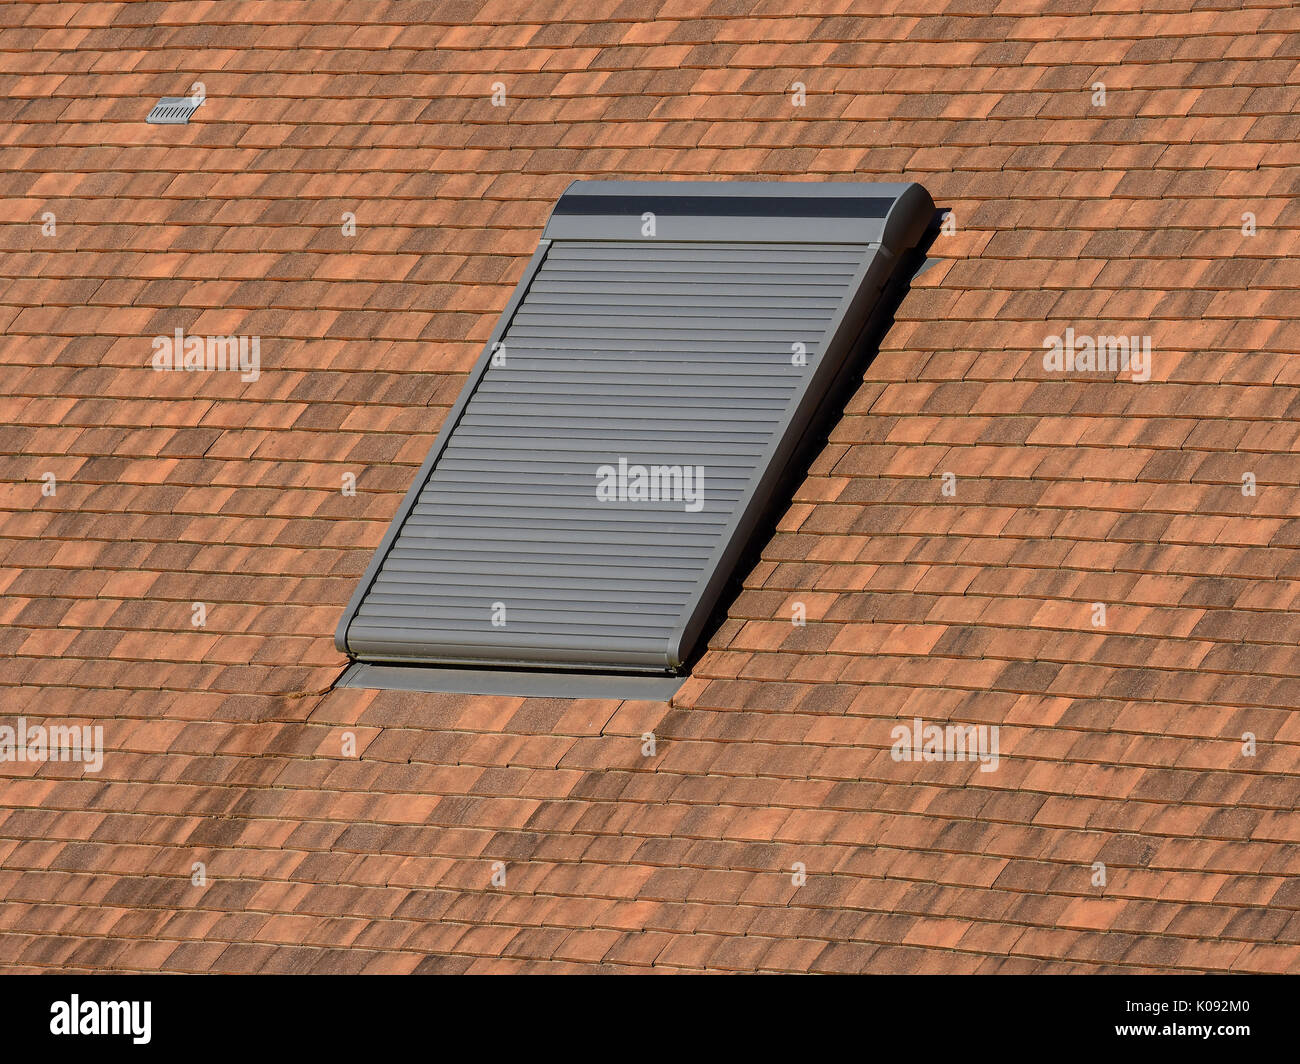 Velux roof-light window with blind closed. - Stock Image